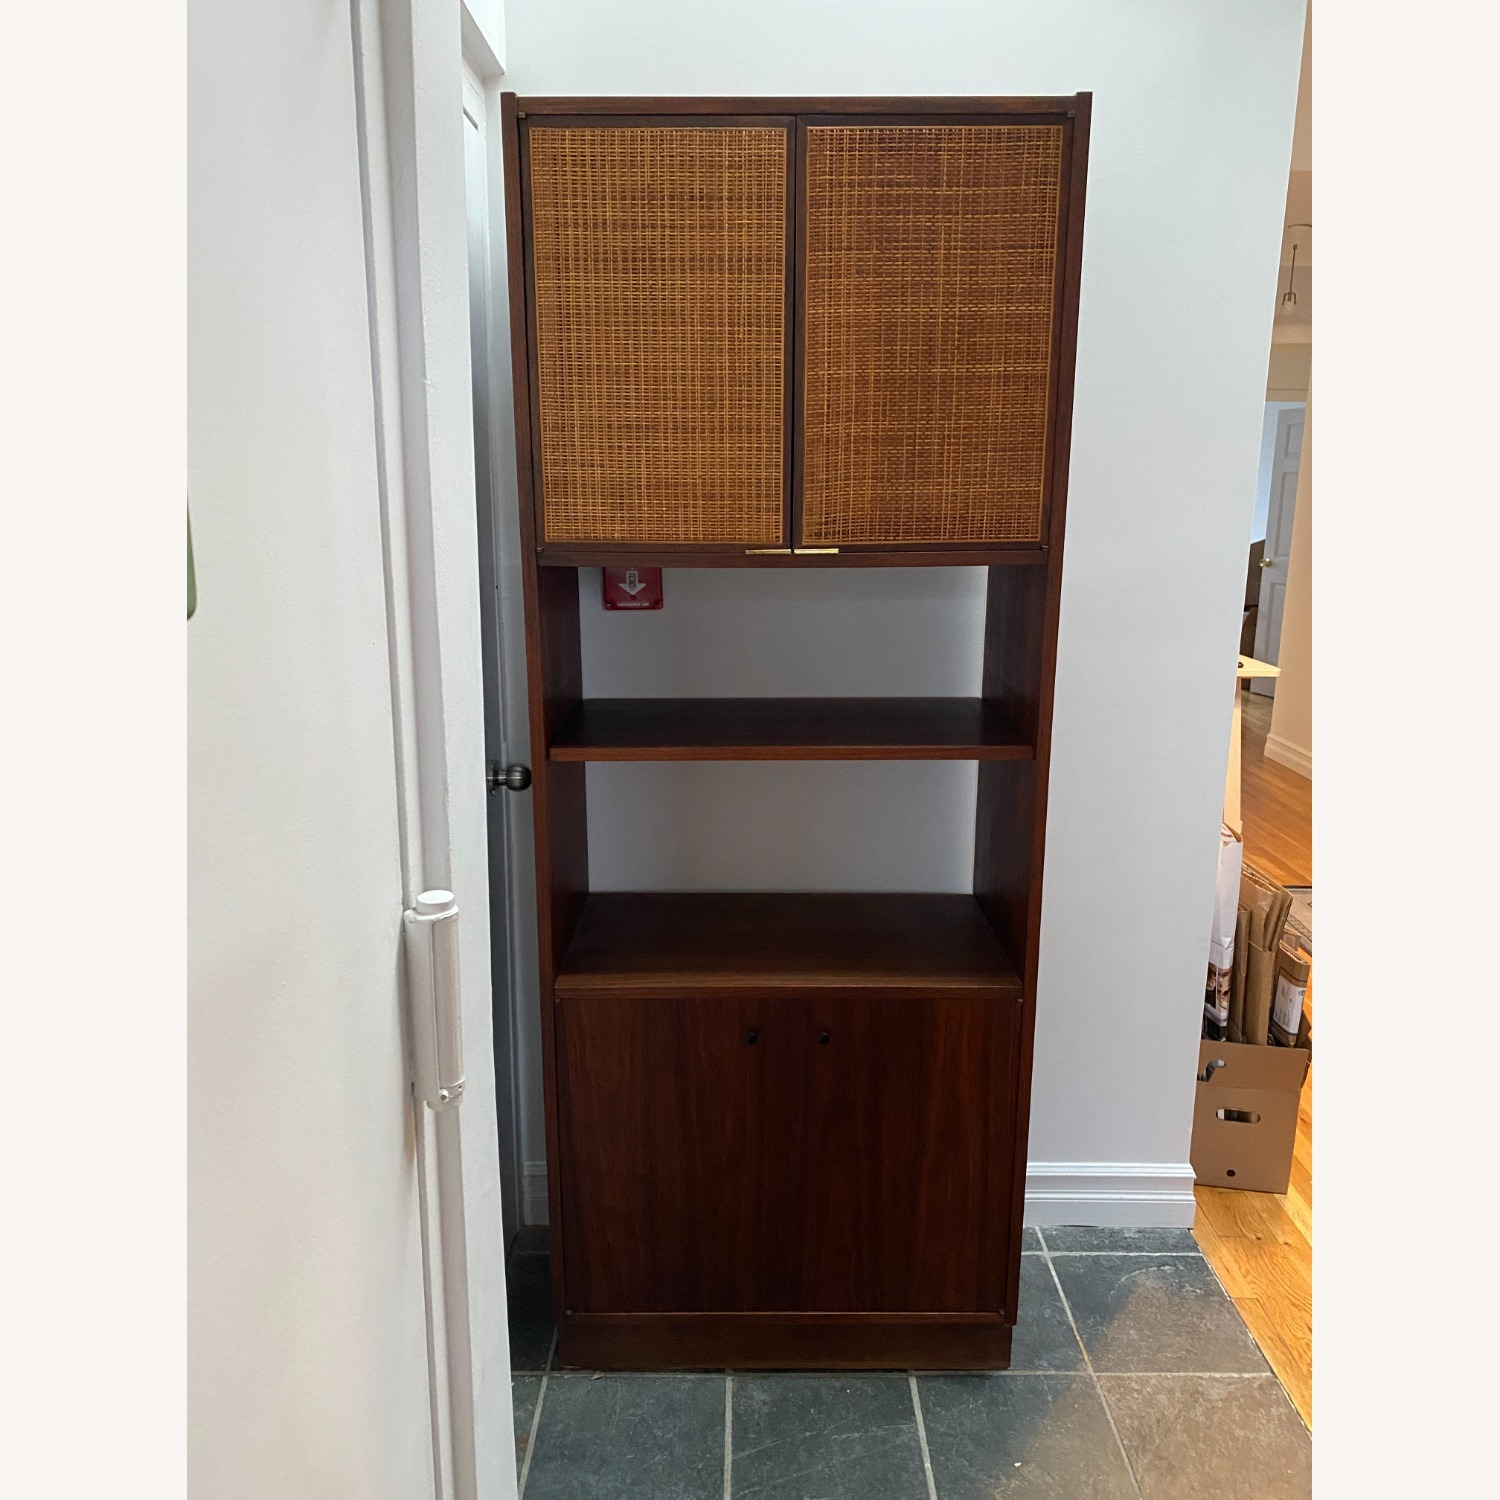 Midcentury Tall Media Cabinet with Cane Doors - image-1